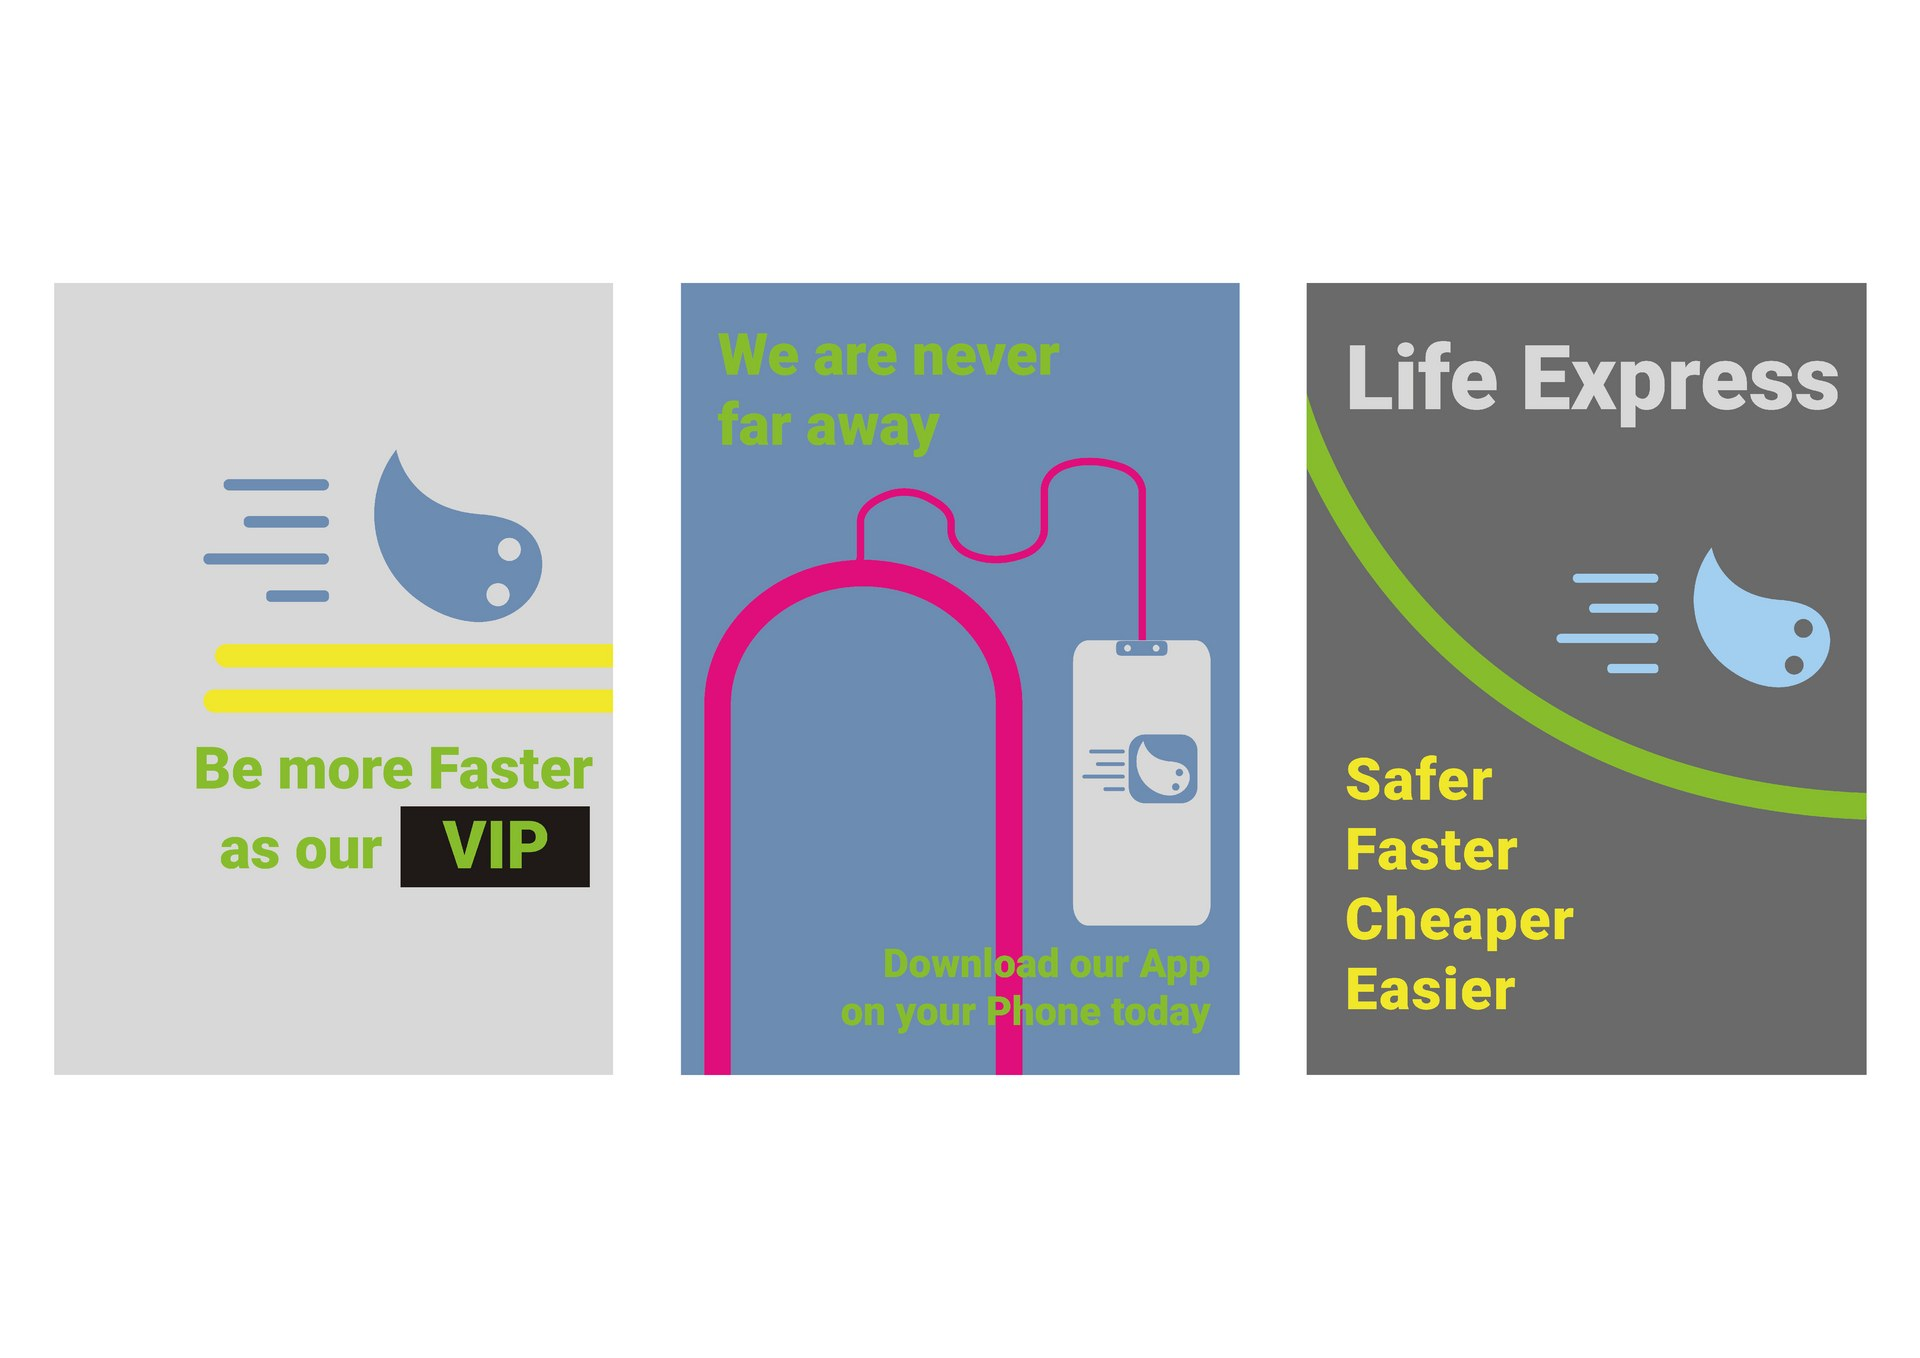 Poster of Life Express